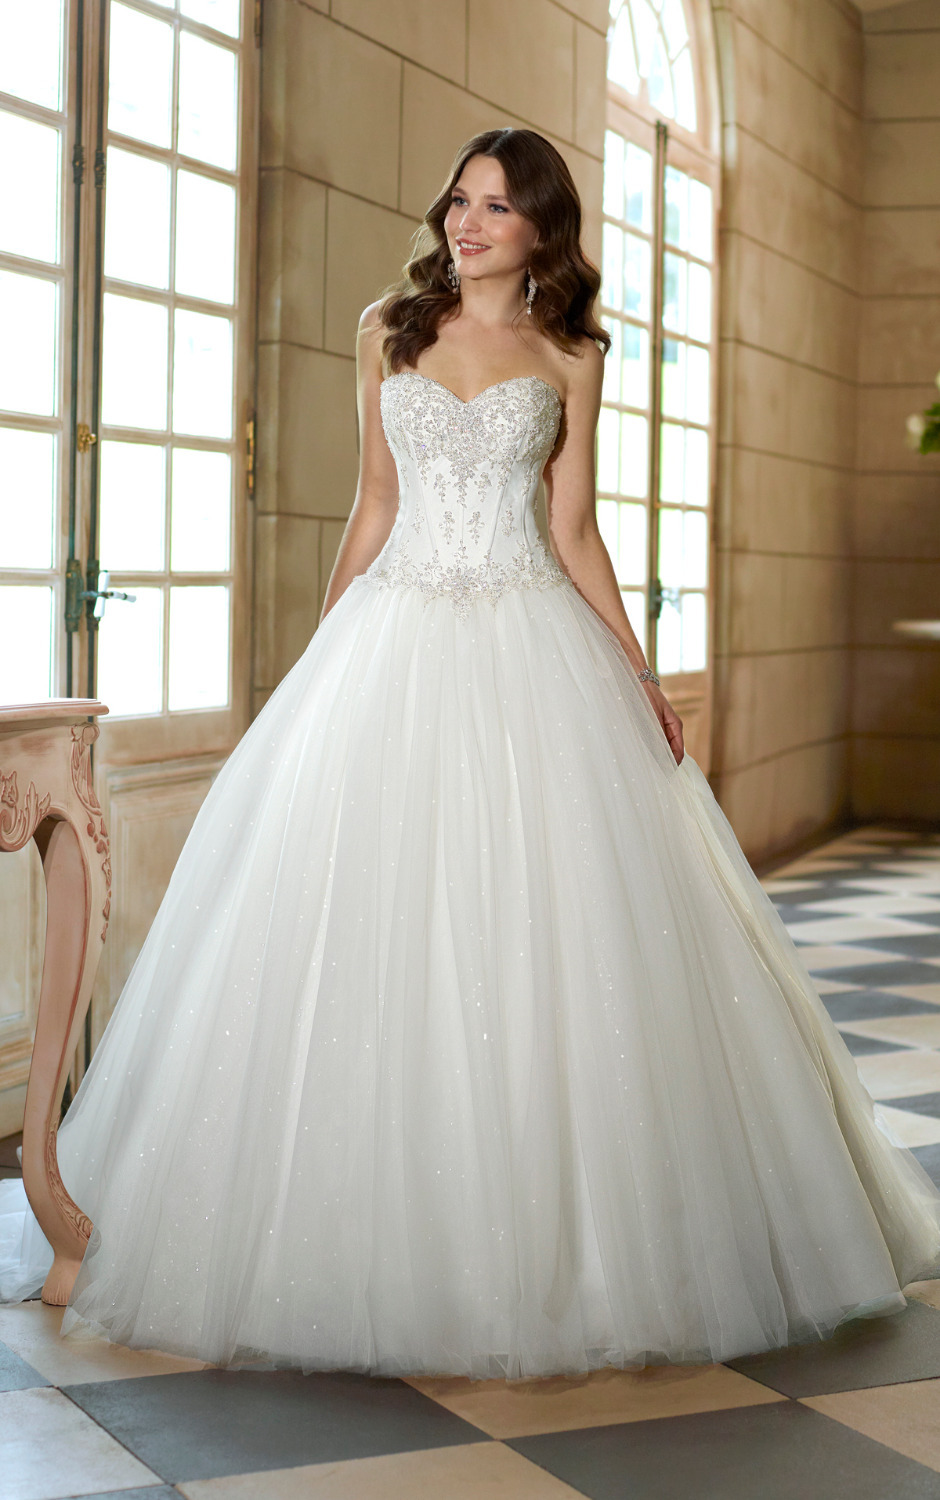 Princess Wedding Gown: 2014-Sweetheart-Beaded-Lace-Sparkle-Ball-Gown-Princess